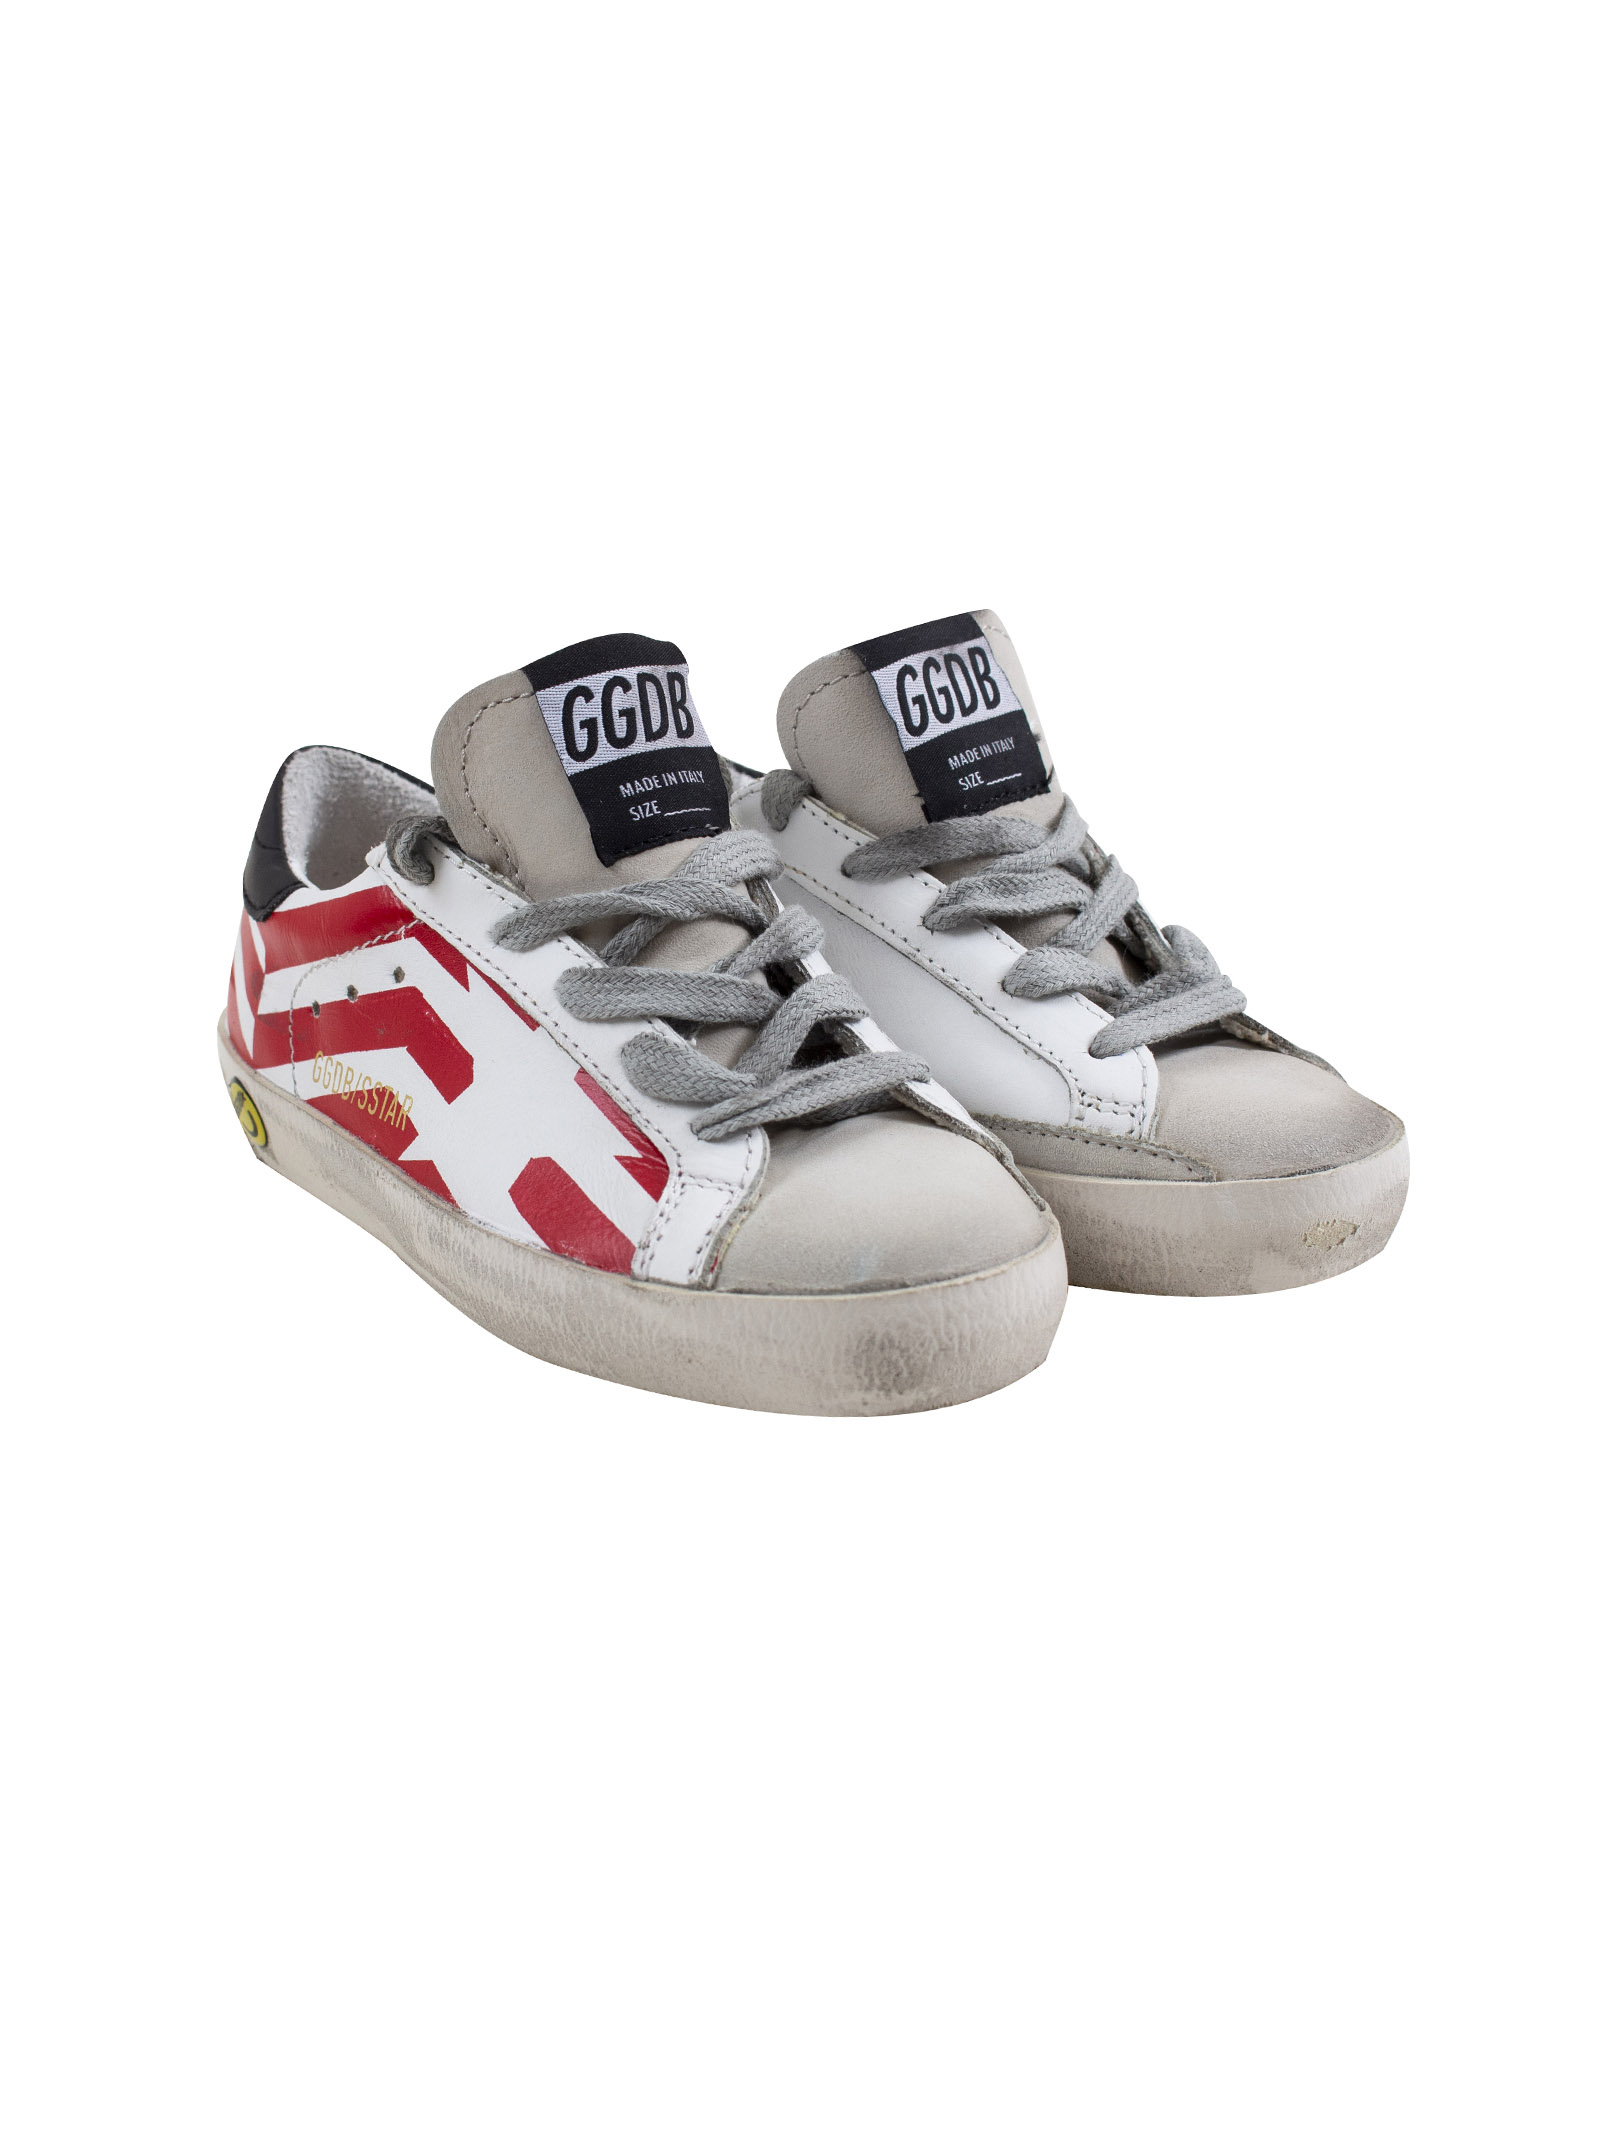 386ae1c8e084 HOME   CATEGORIES BAMBINO   SHOES   SHOES   SUPERSTAR SNEAKERS WITH PRINT